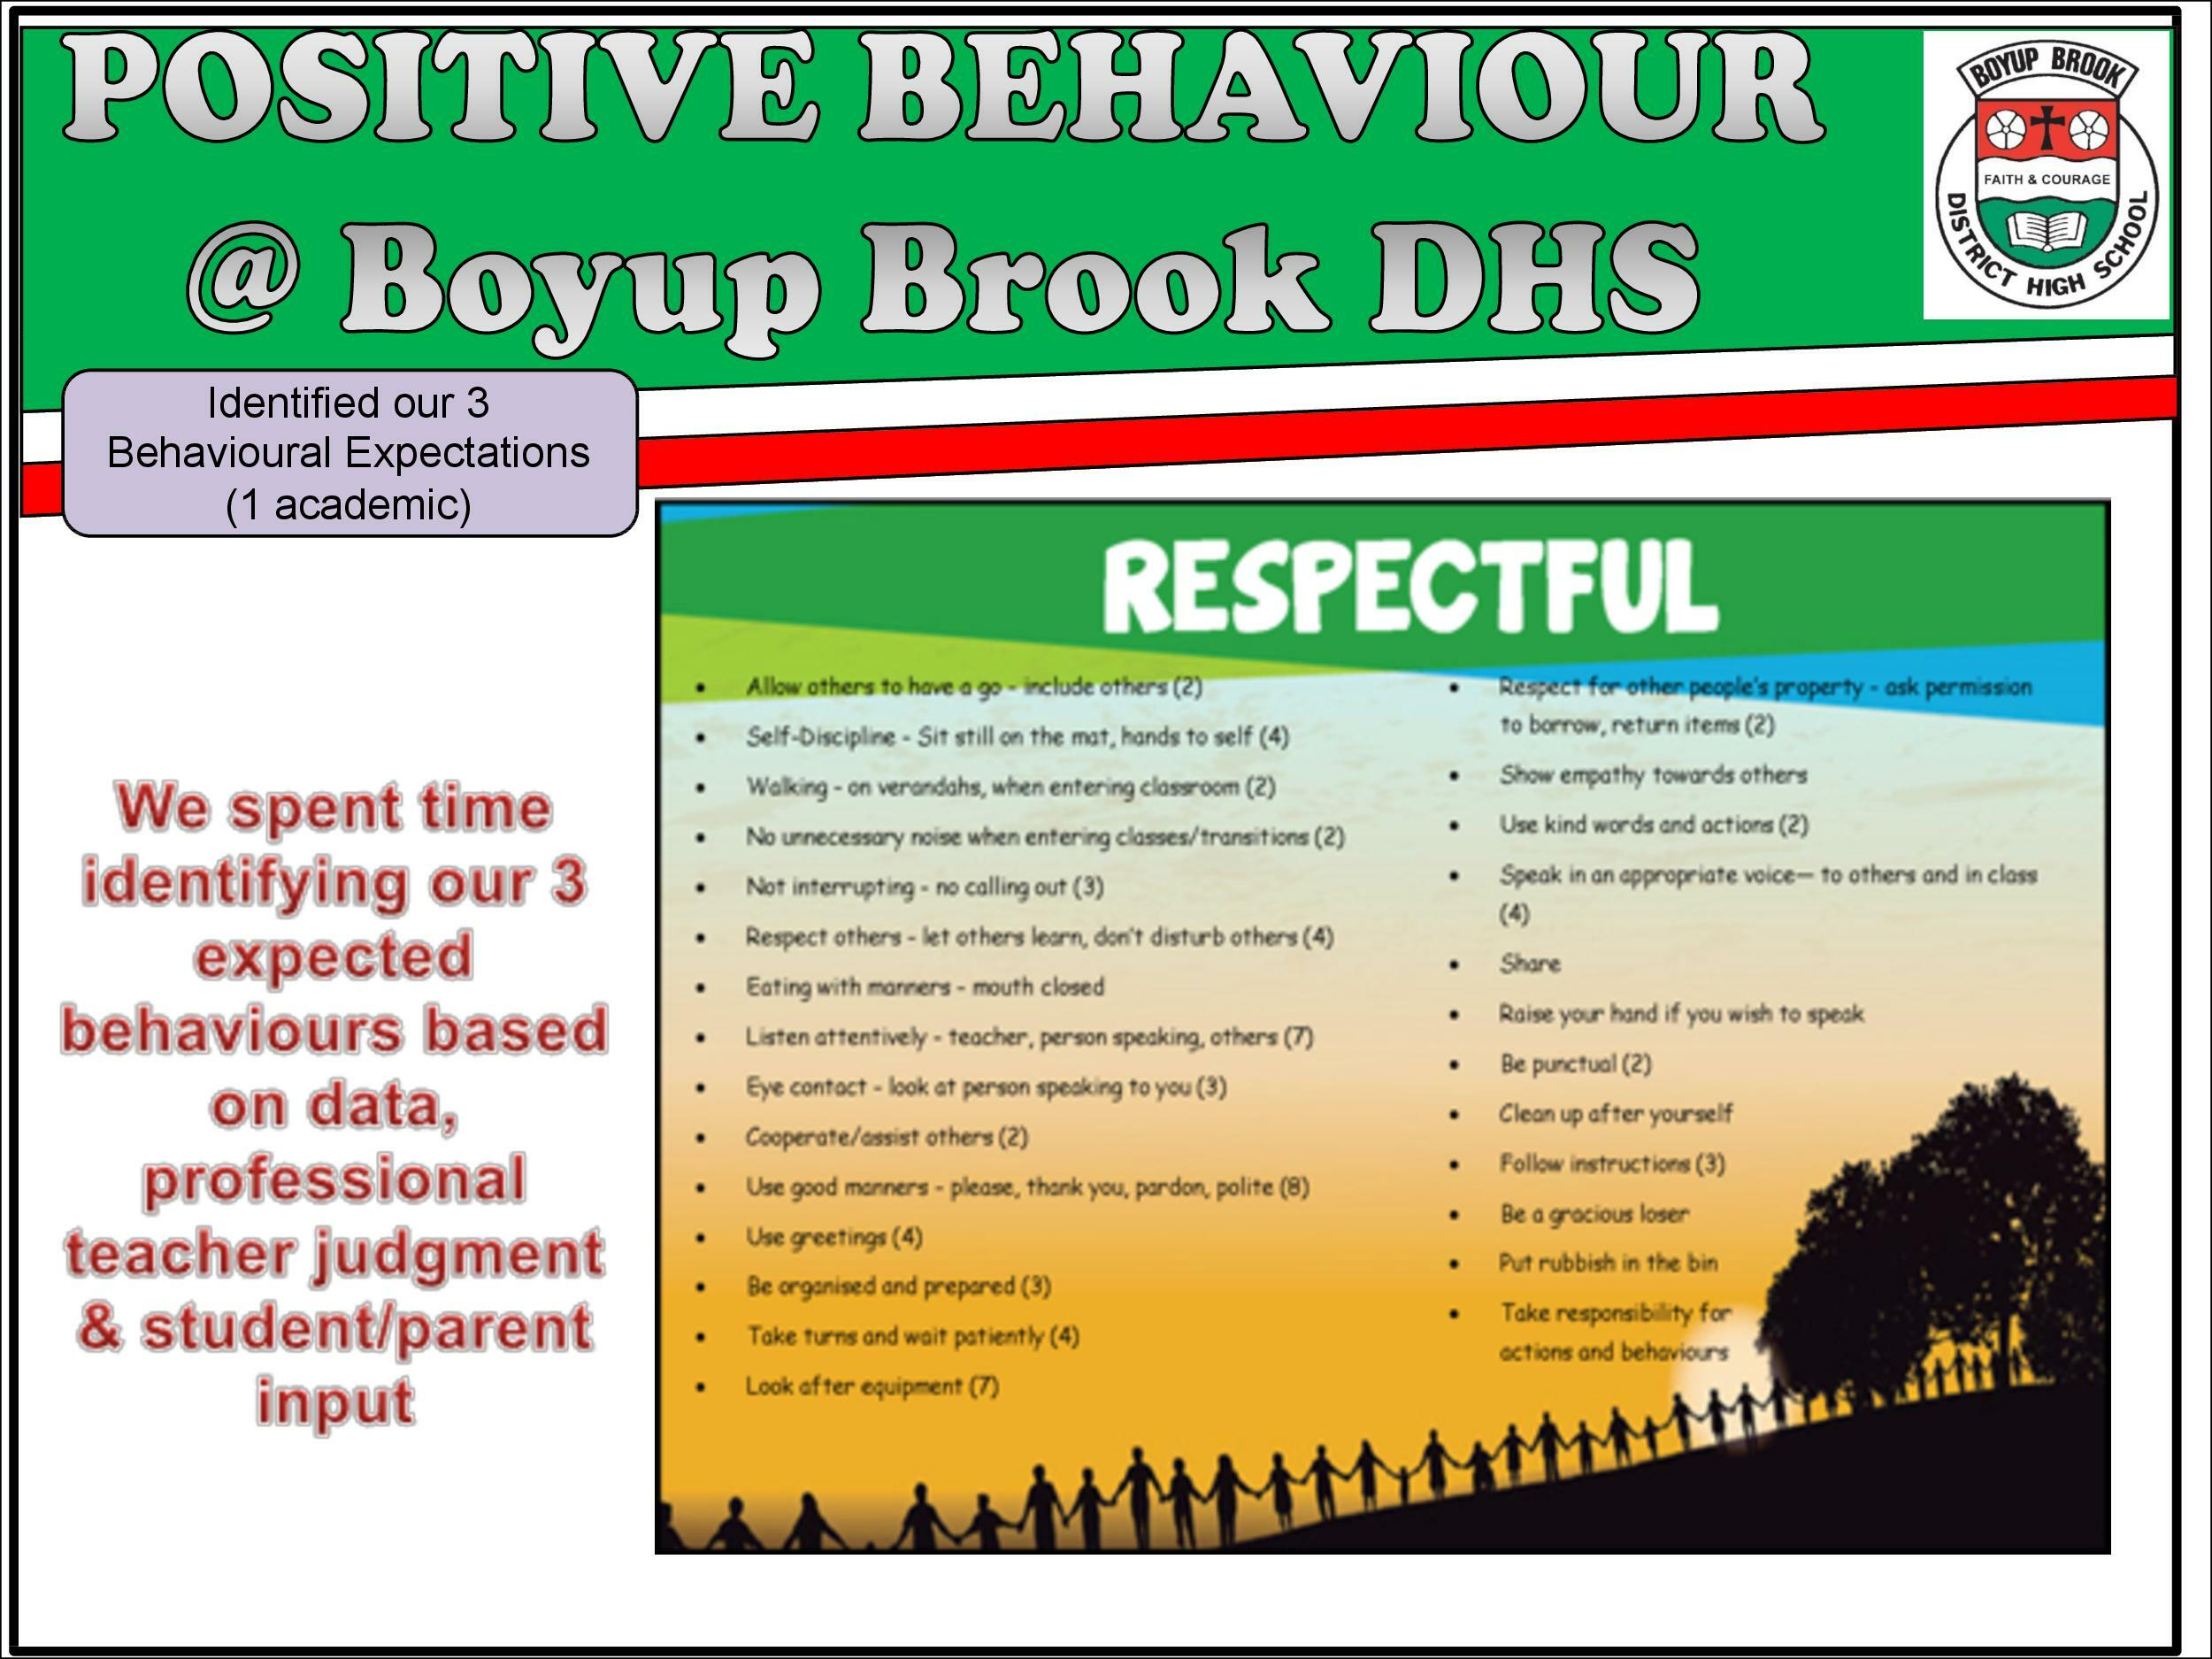 Positive Behaviour Support Page 9